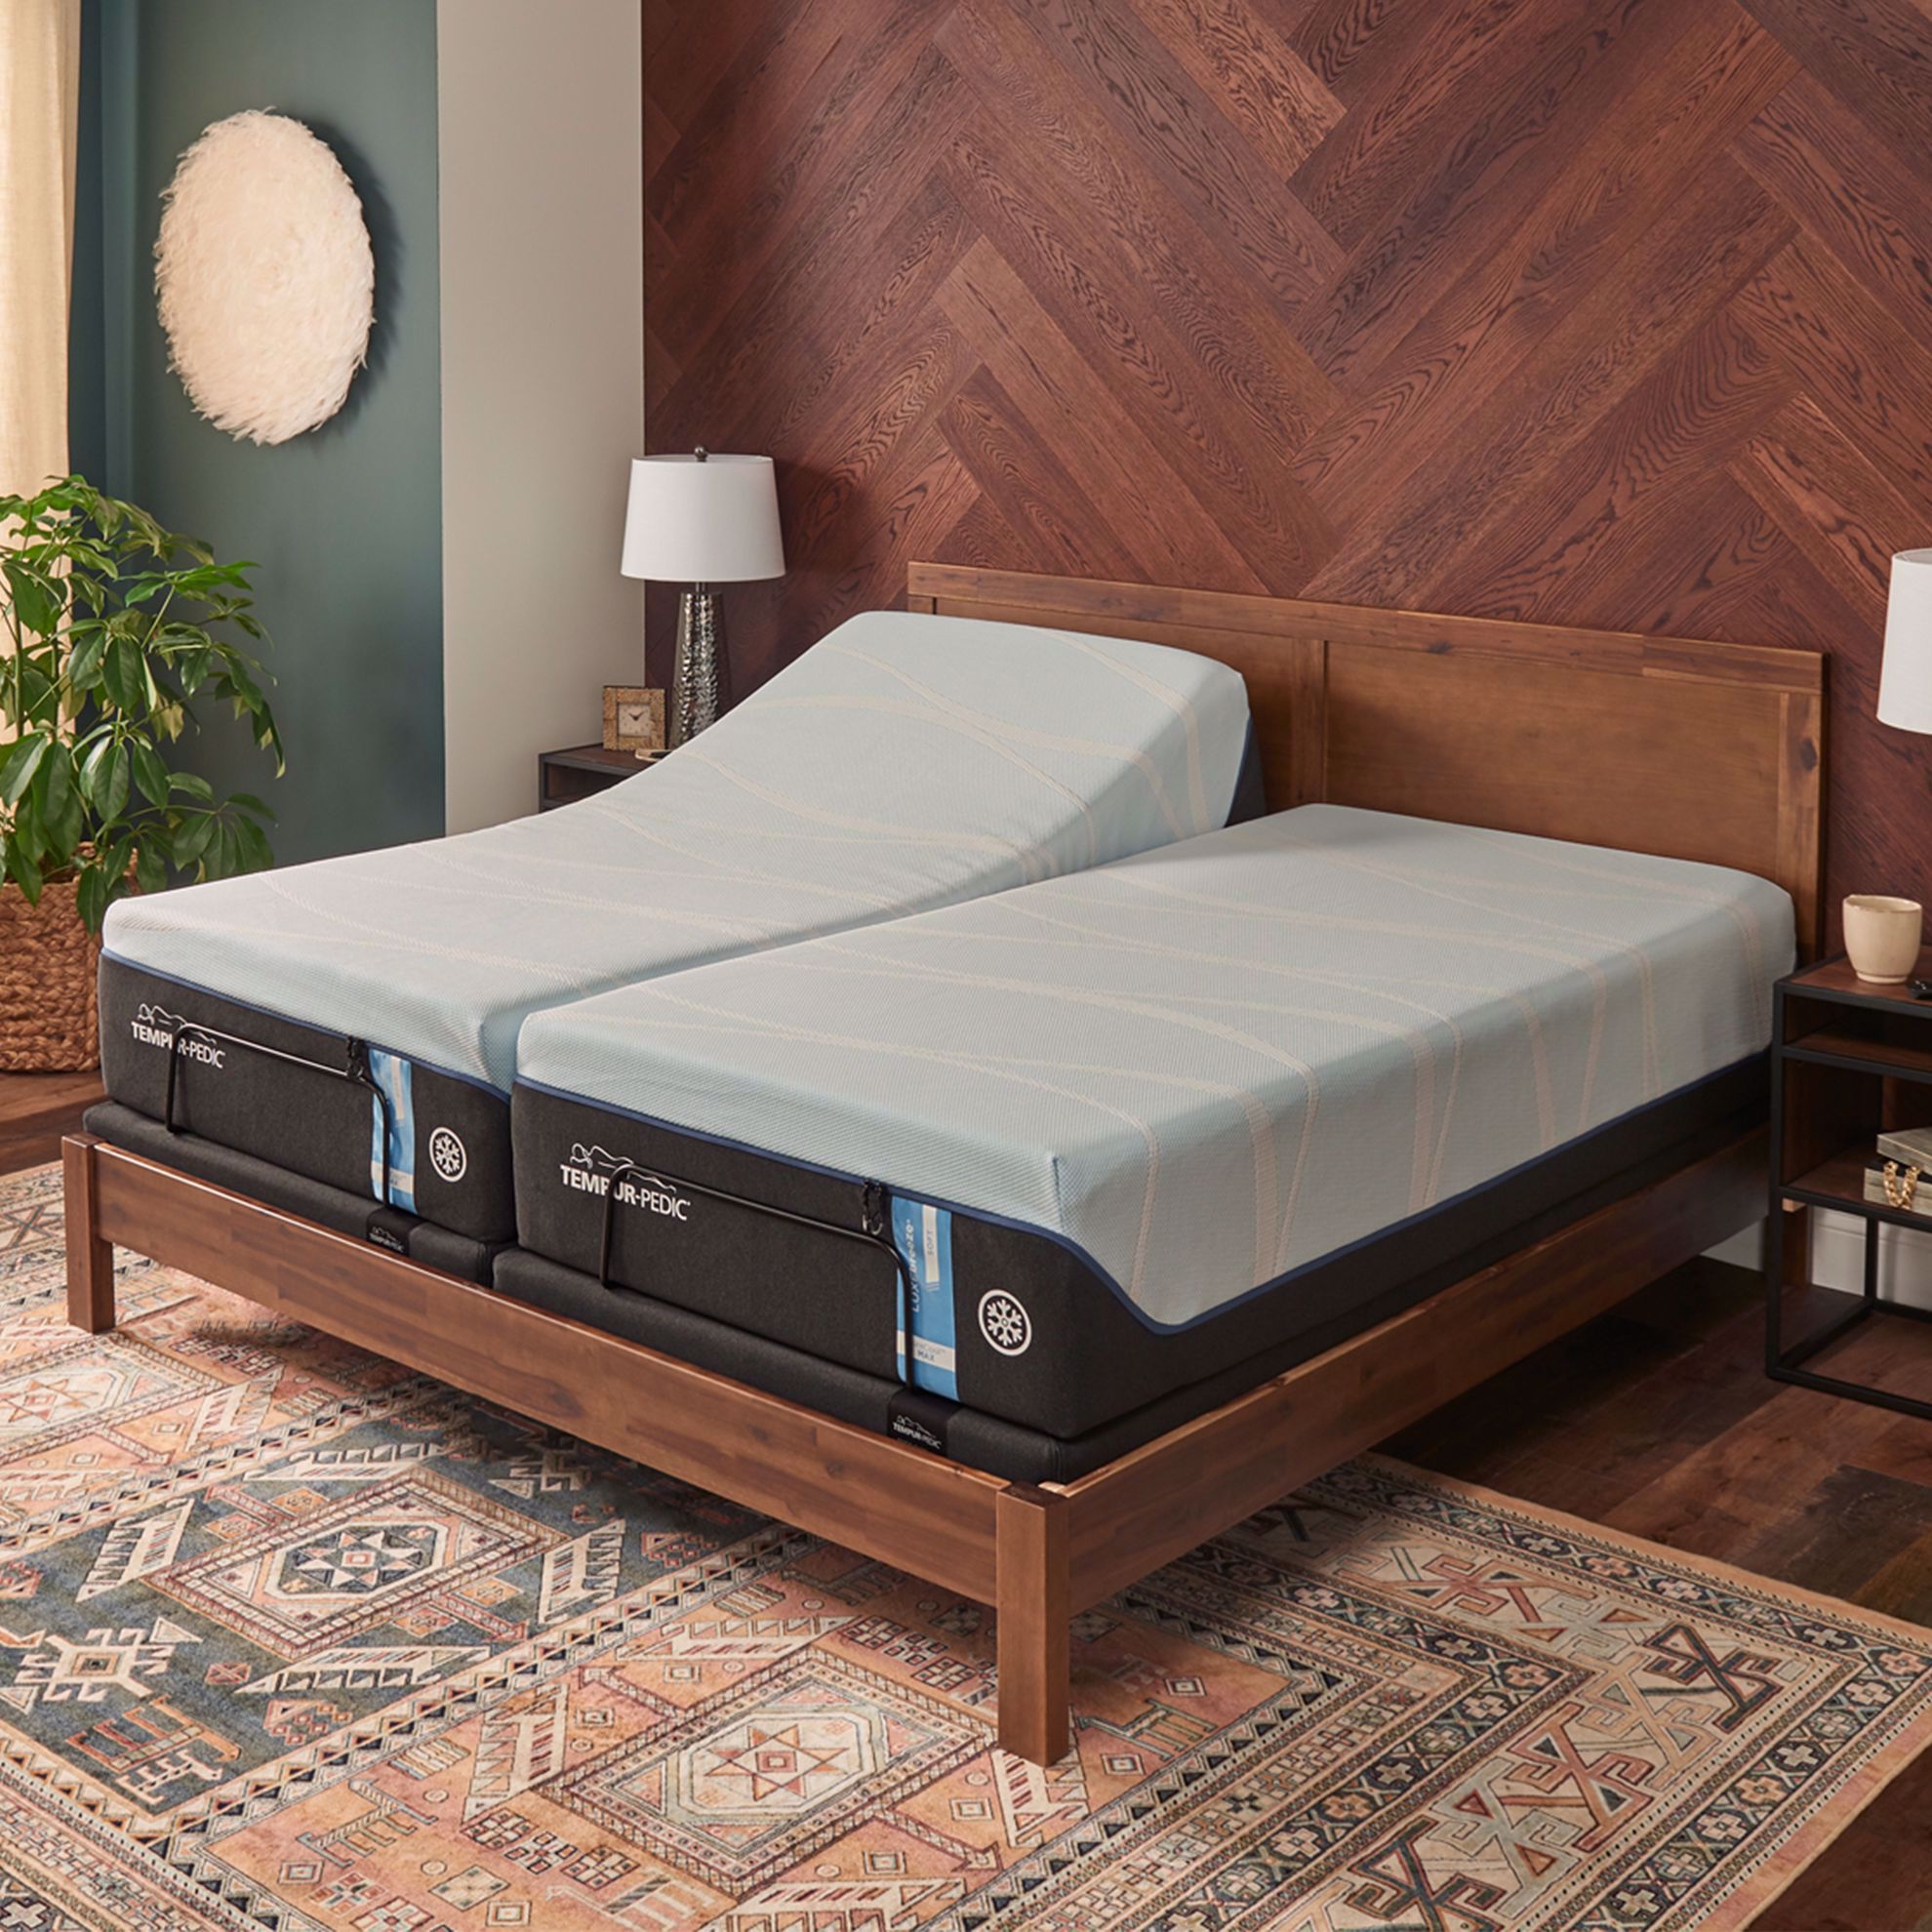 Picture of Tempur-Pedic Ergo California King Adjustable Smart Base